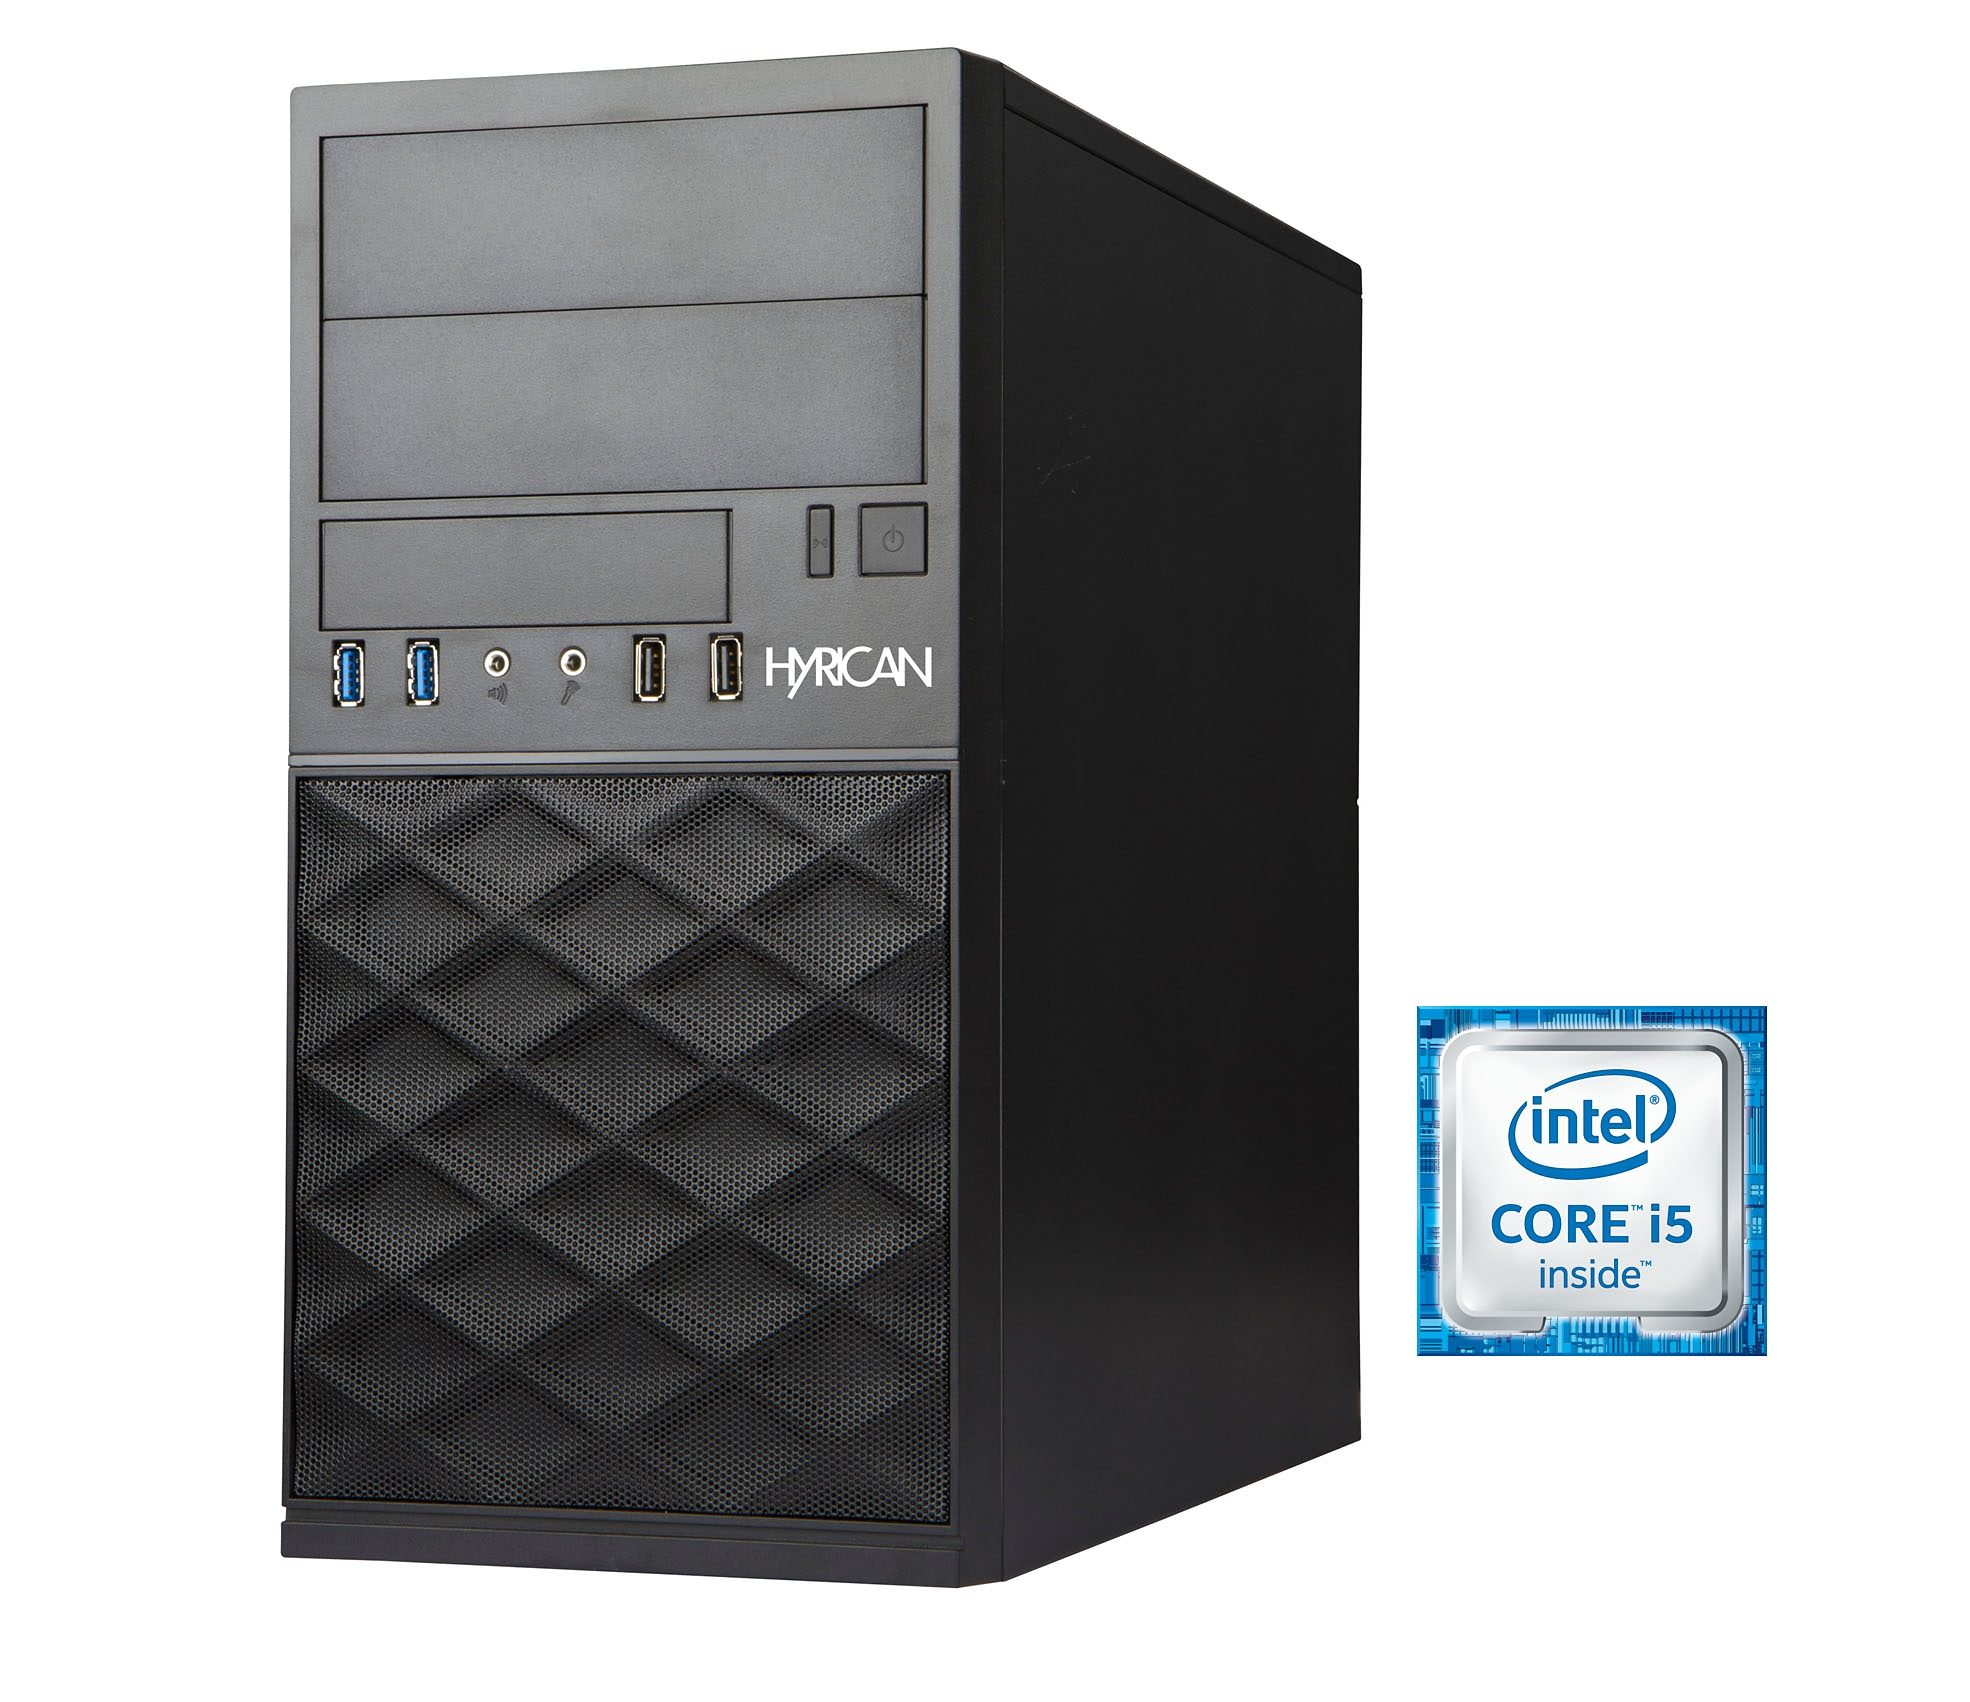 Hyrican Business PC Intel® Core™ i5-6400, 8GB, 1TB, Windows 10 Pro »Gigabyte Edition CTS00300«